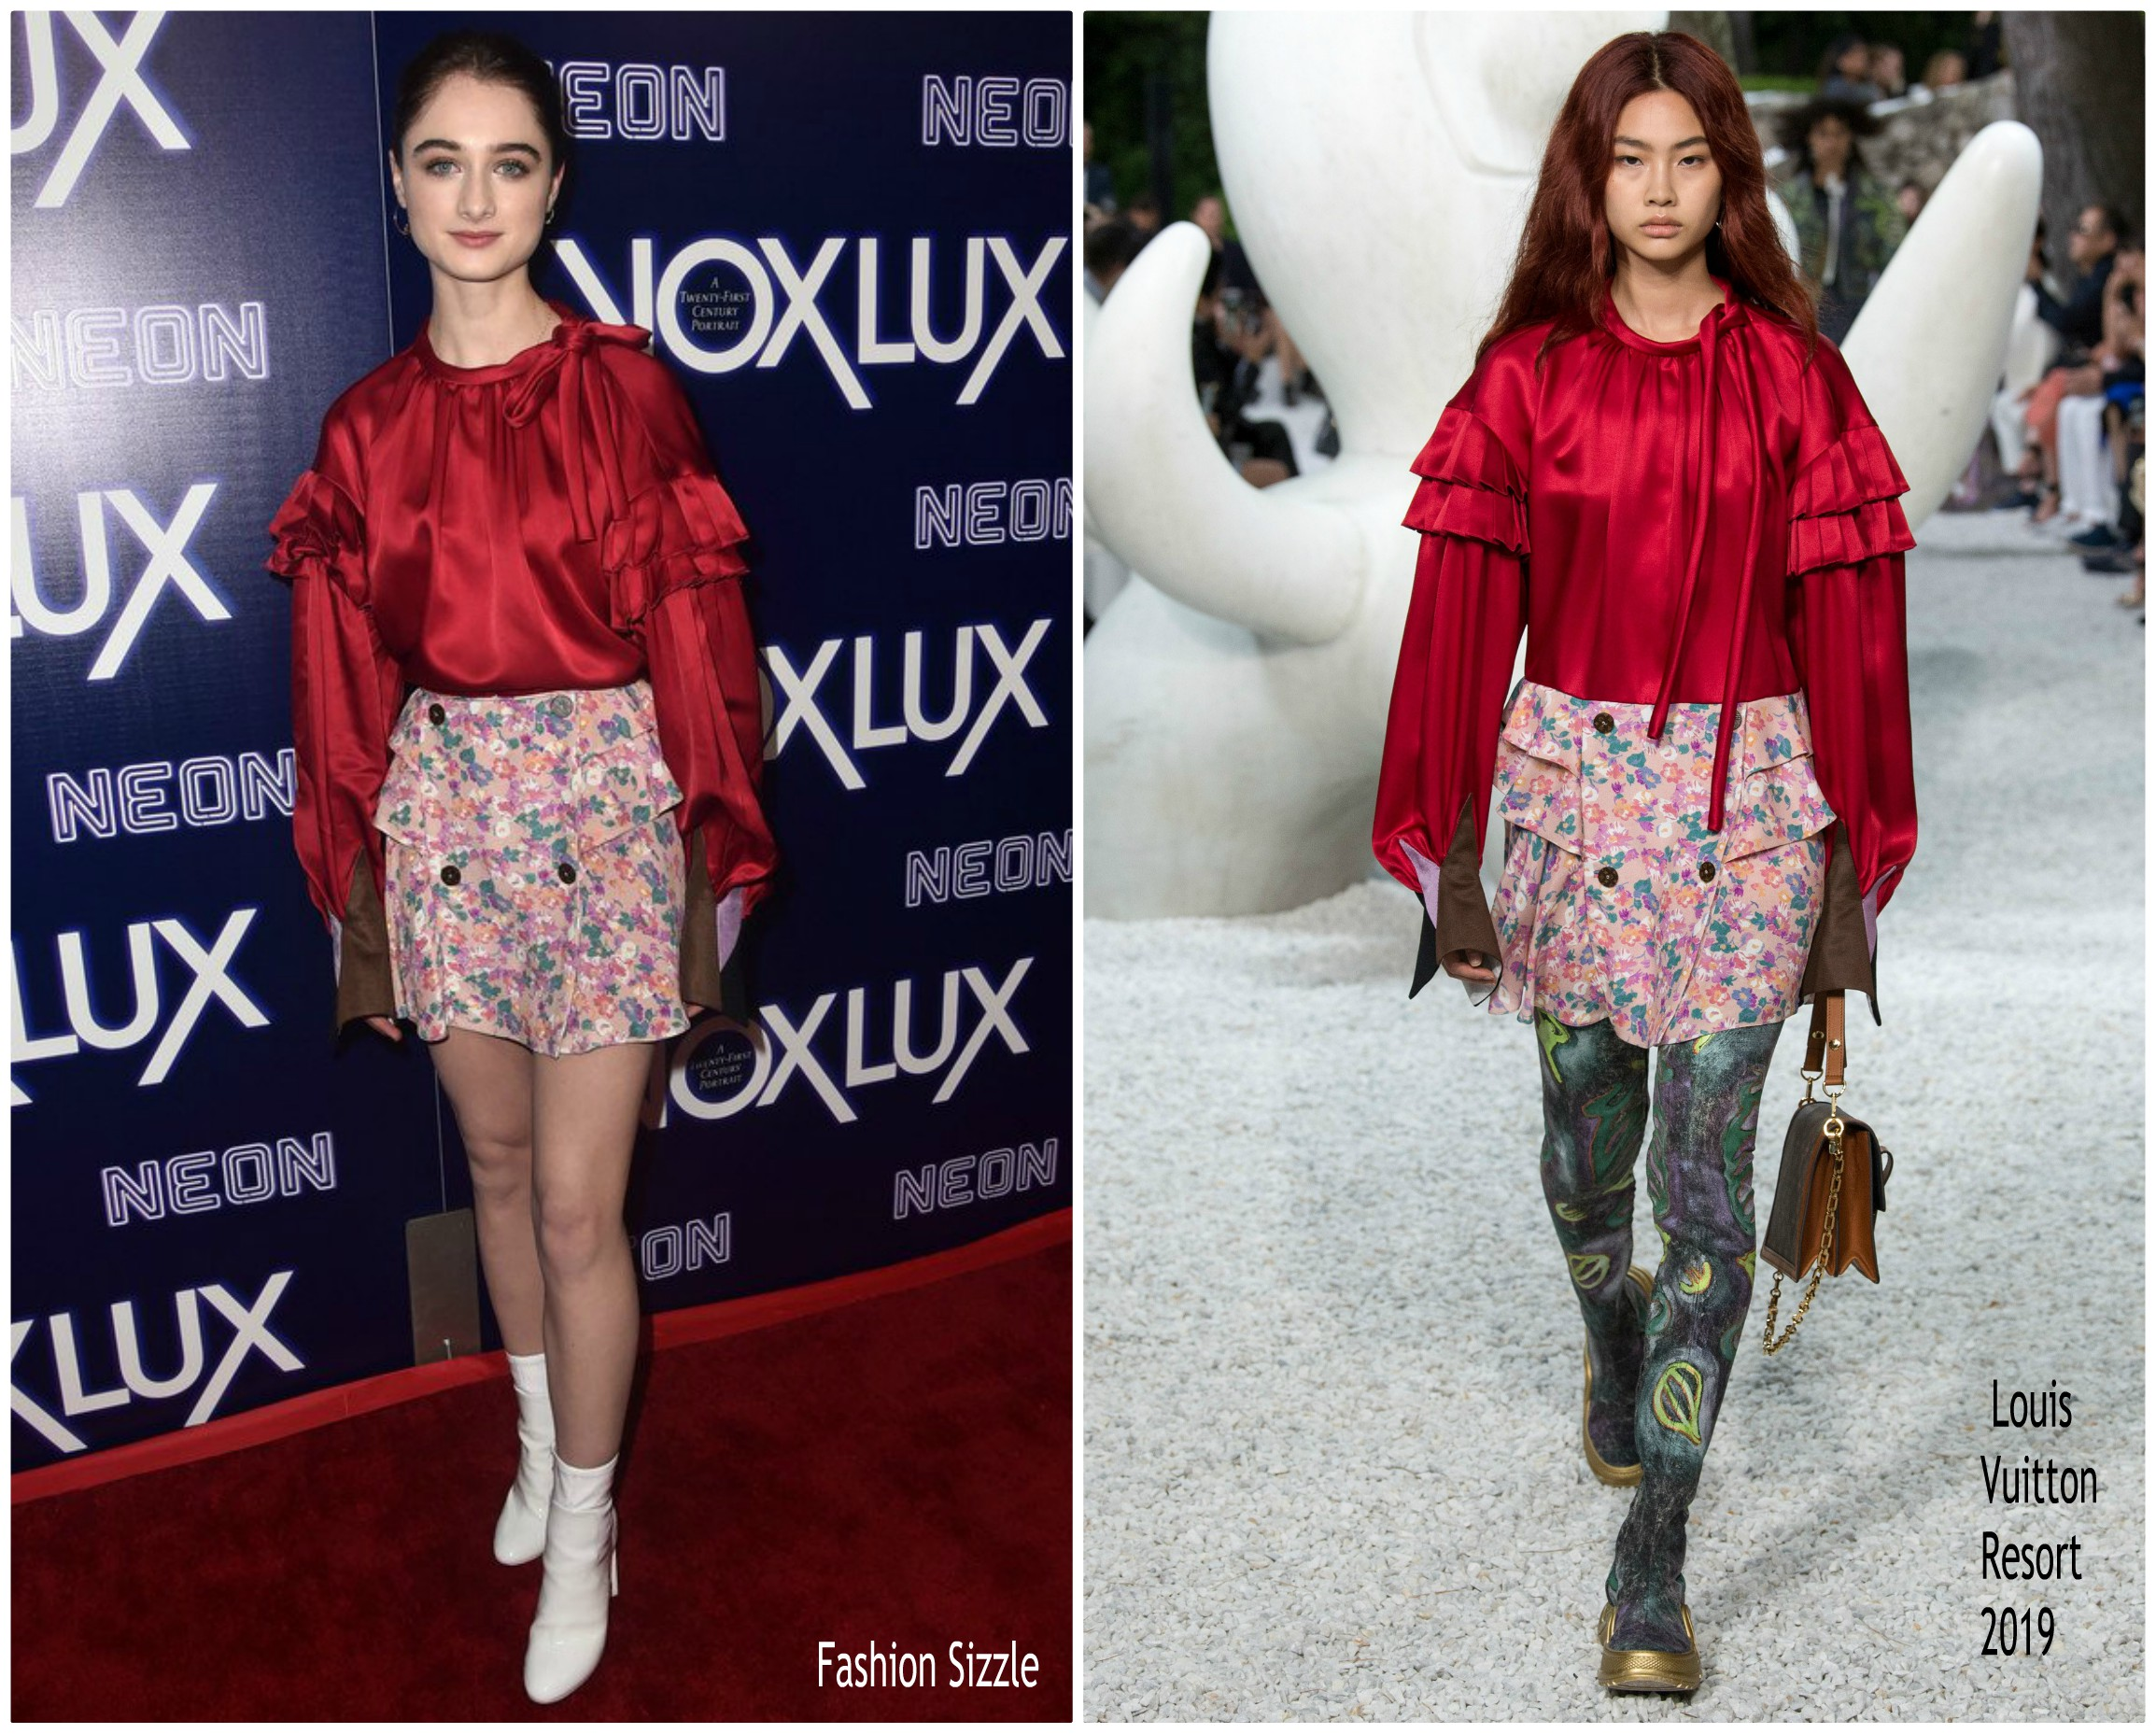 raffey-cassidy-in-louis-vuitton-vox-lux-la-premiere